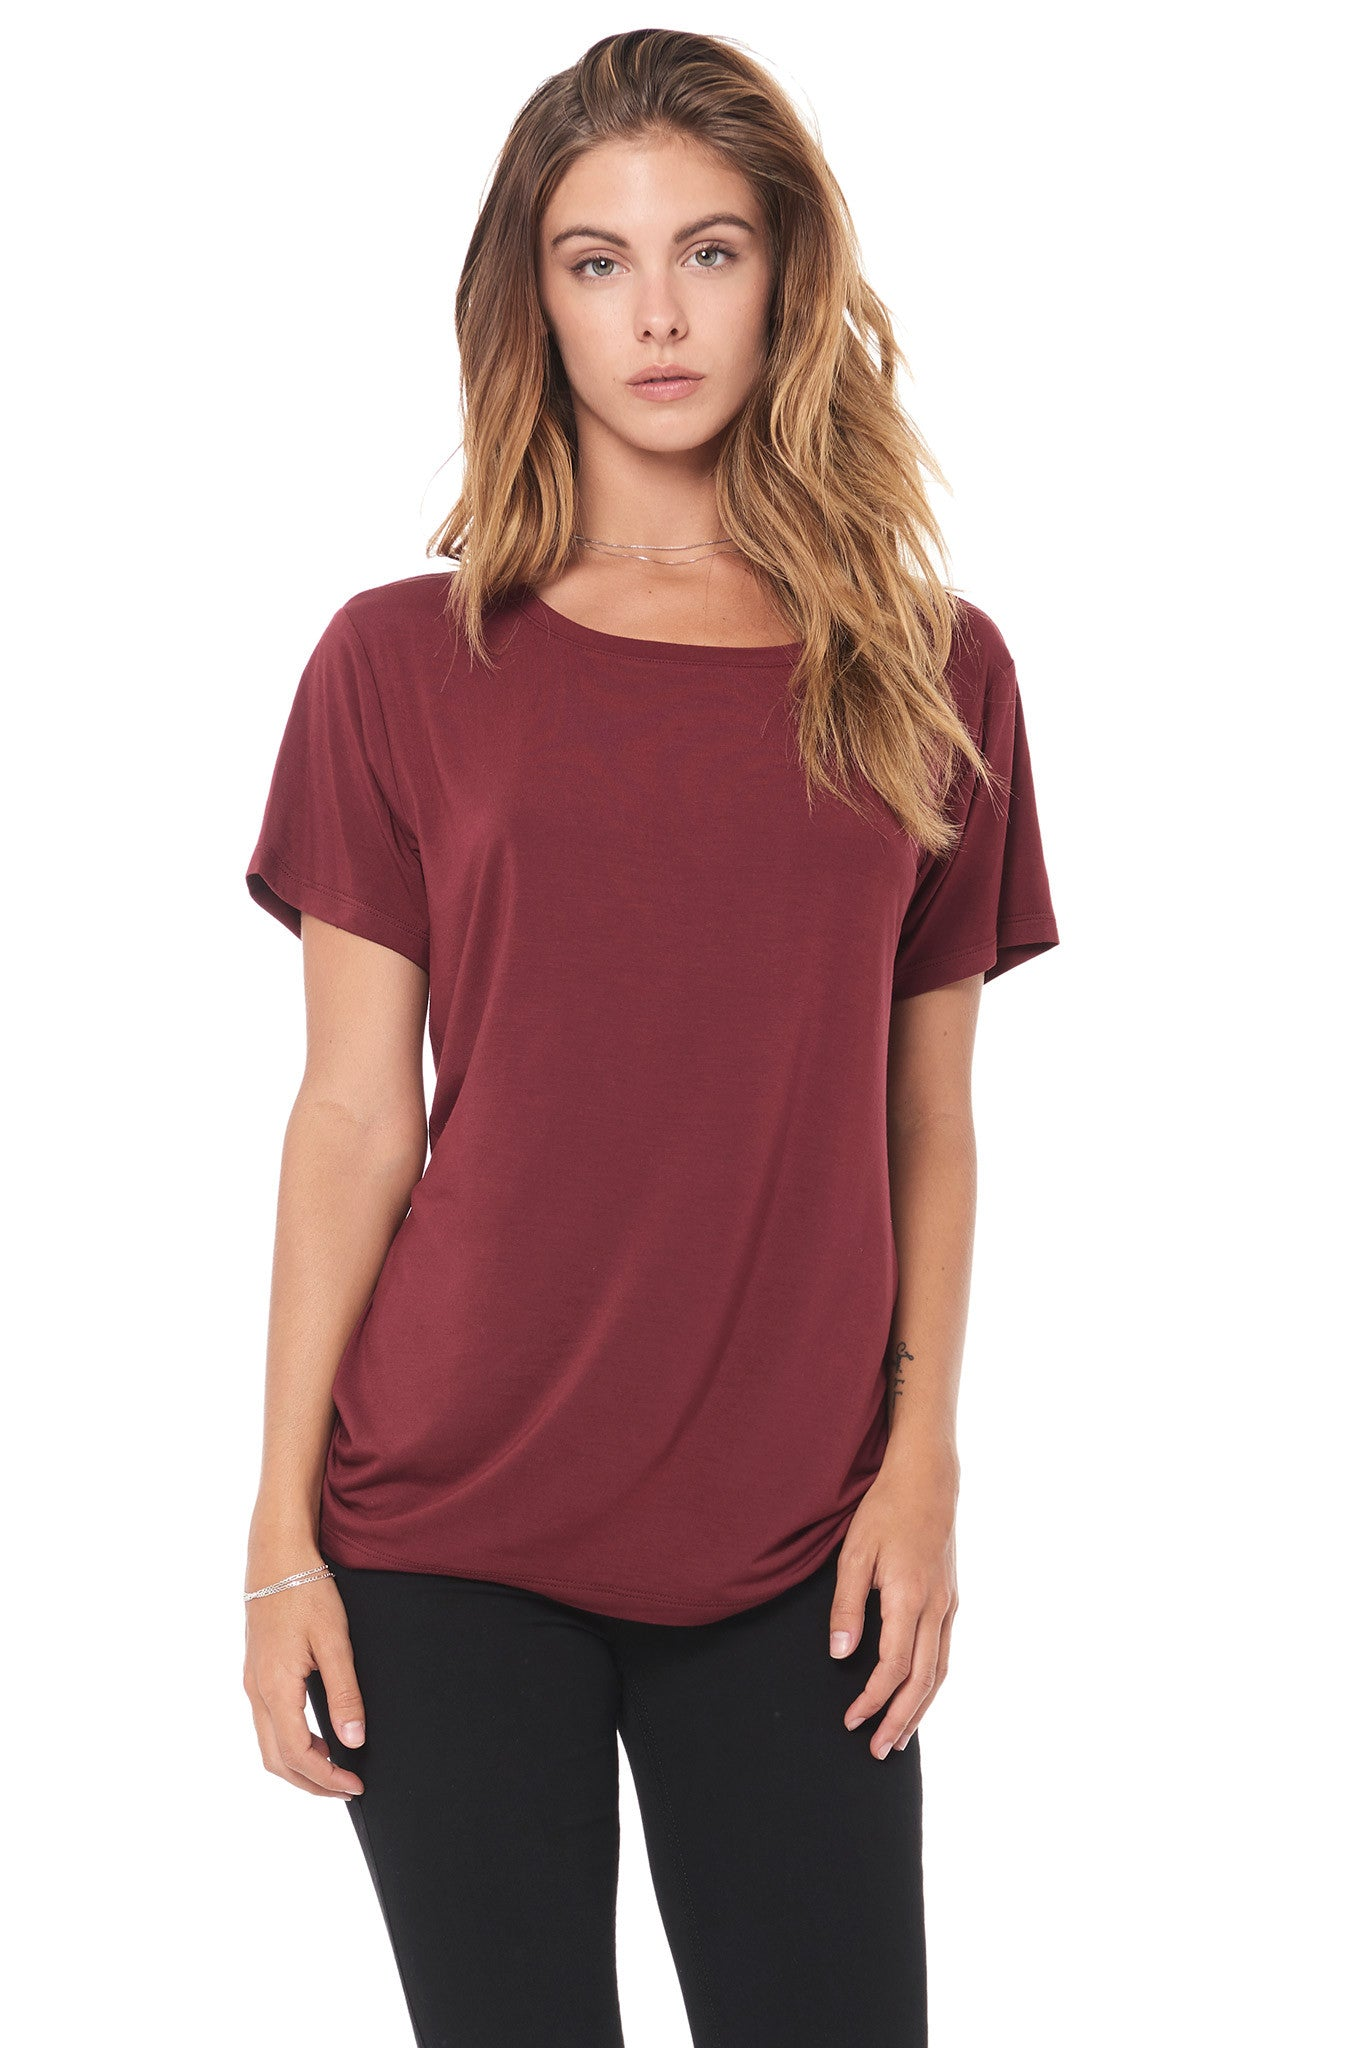 WOMEN'S MODAL WIDE NECK TEE - MAROON